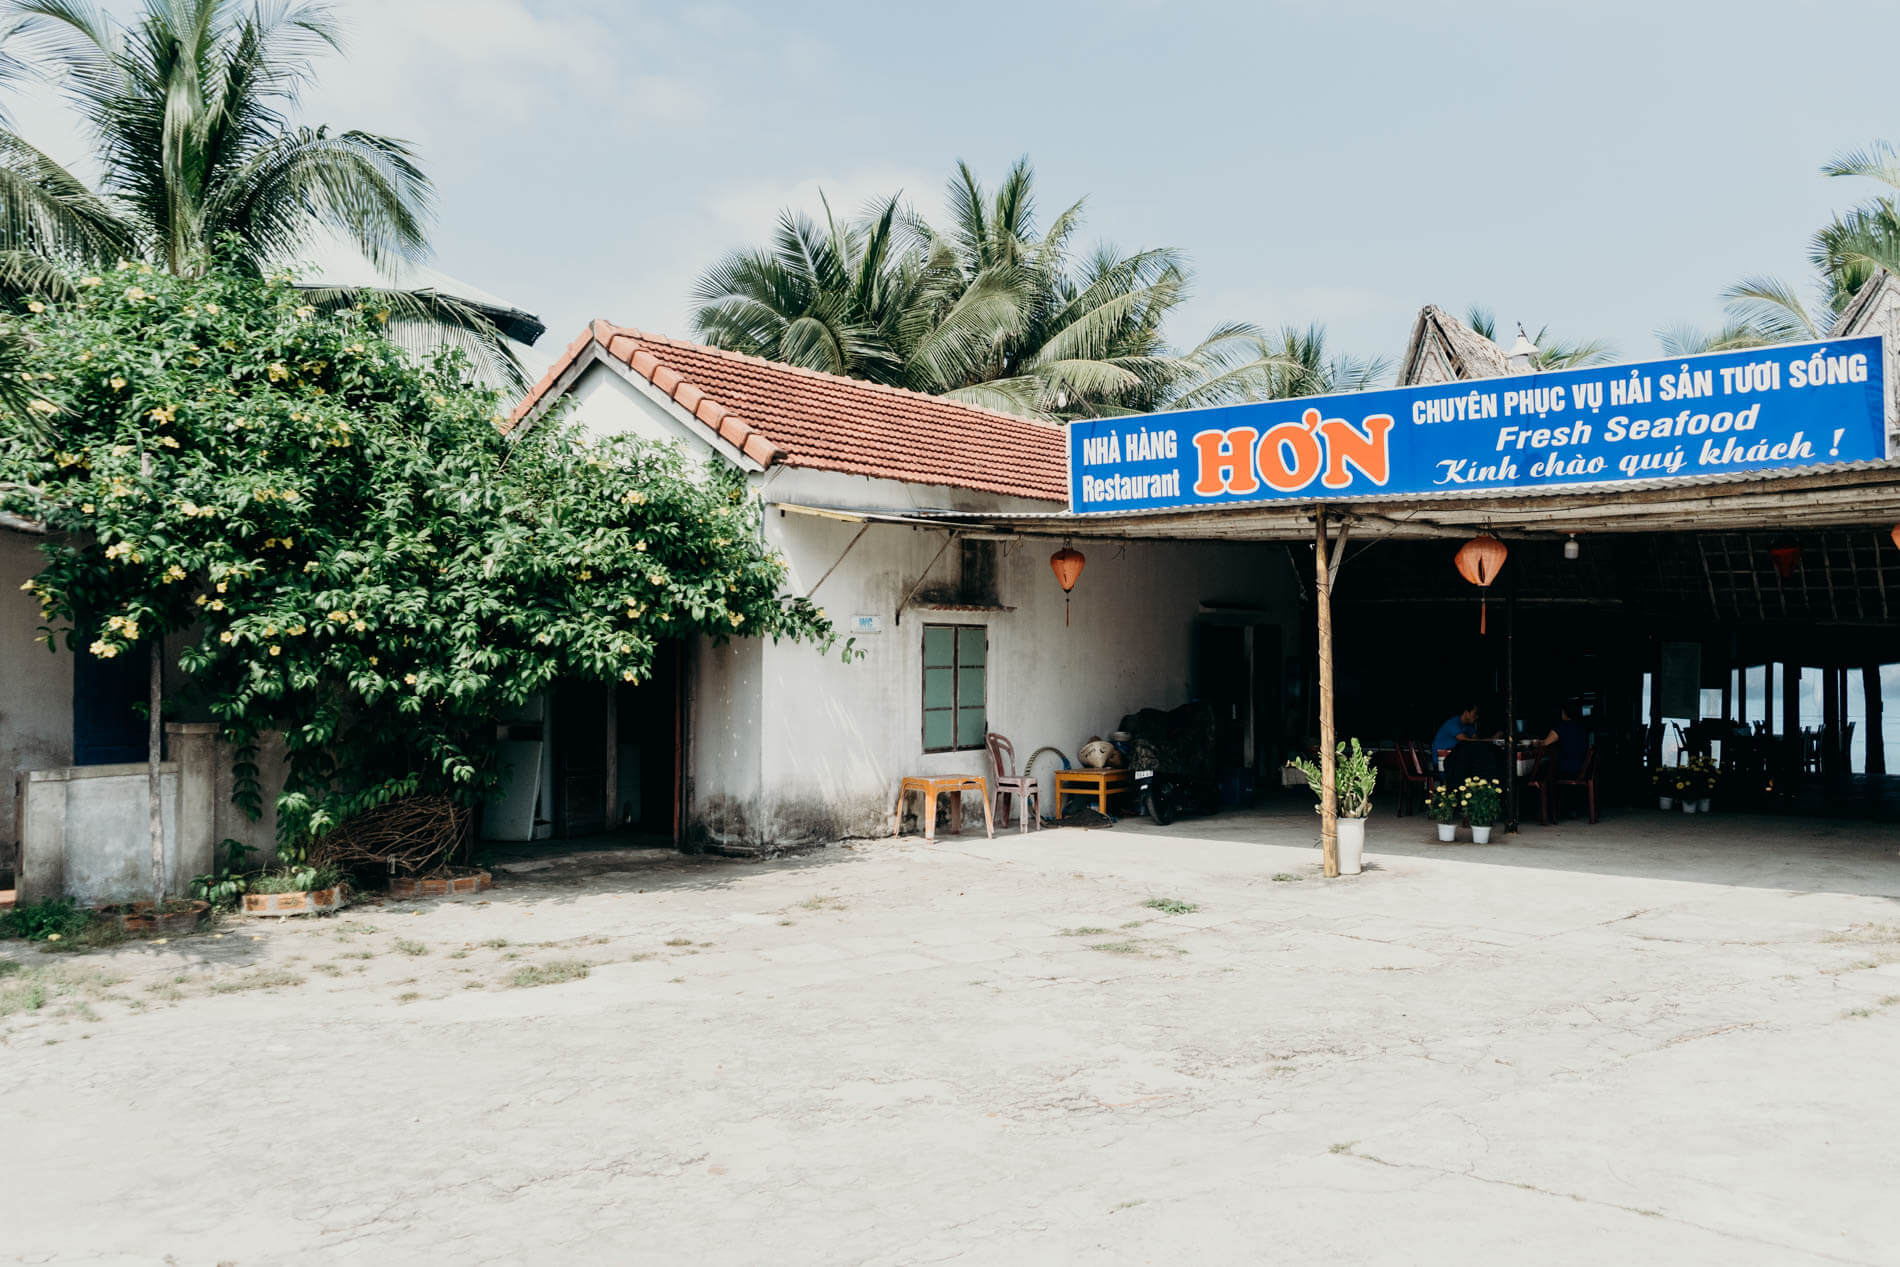 Hon Restaurant is one of the best beach restaurants in Hoi An